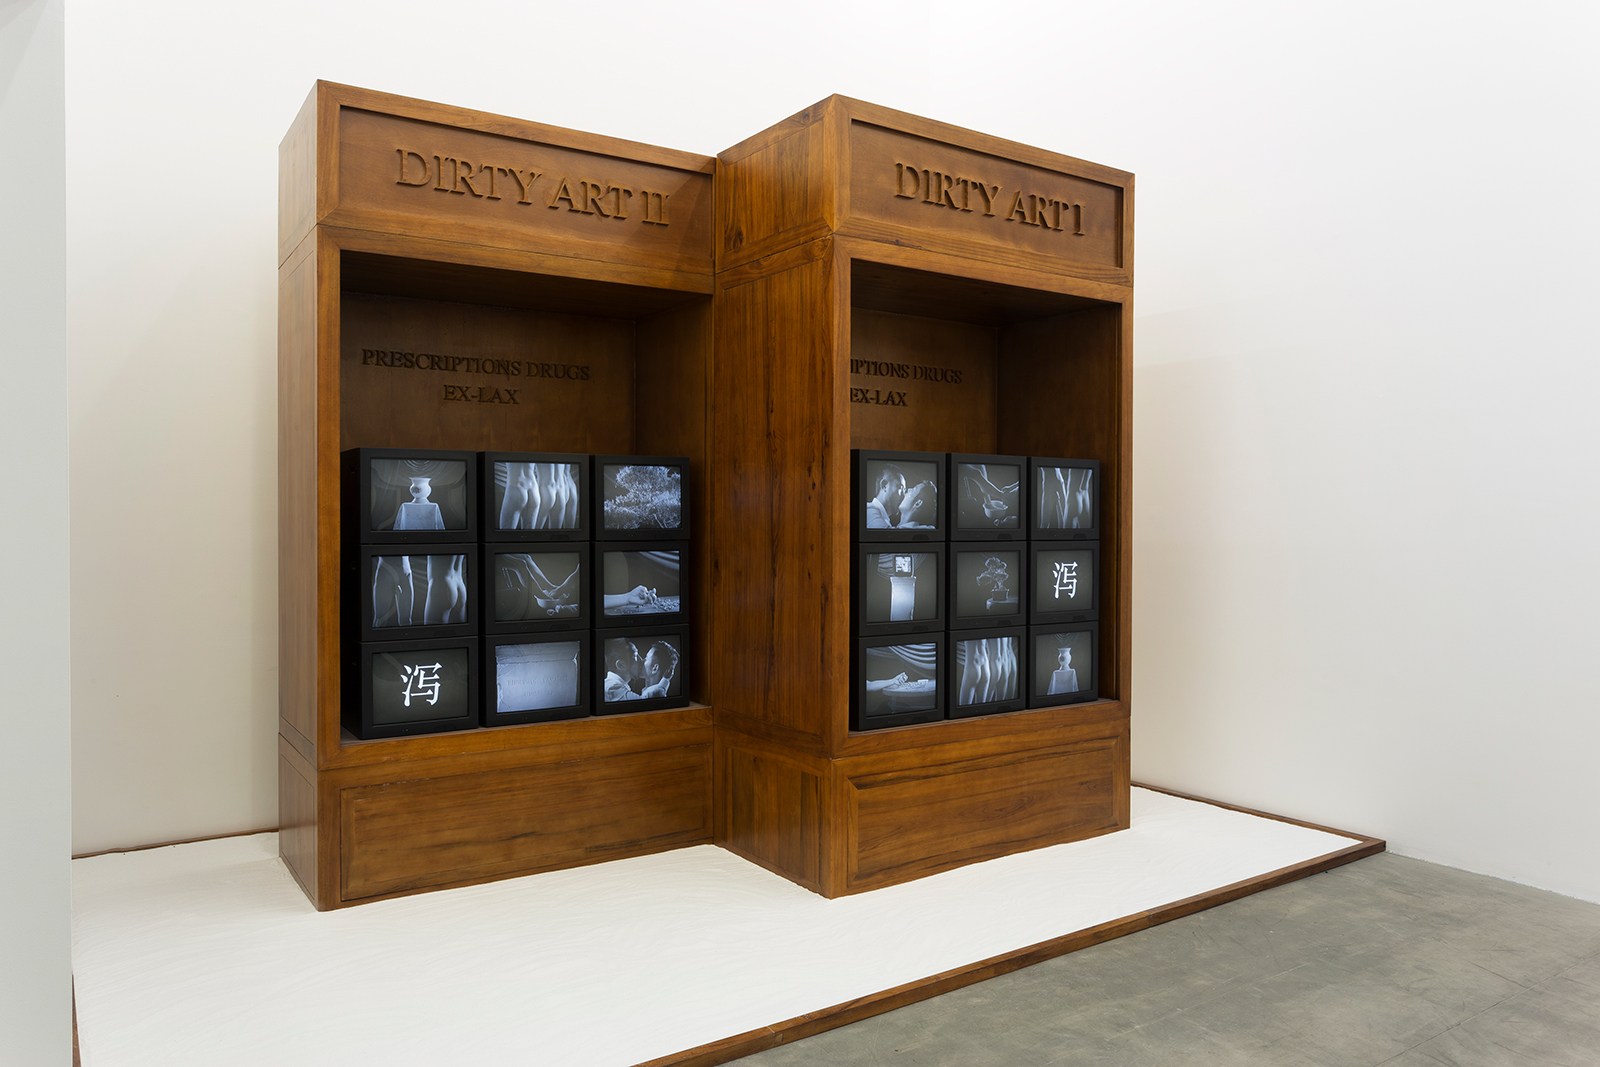 Dirty Art , 2013. Installation view, Galerie Urs Meile, Beijing, China, 2013.